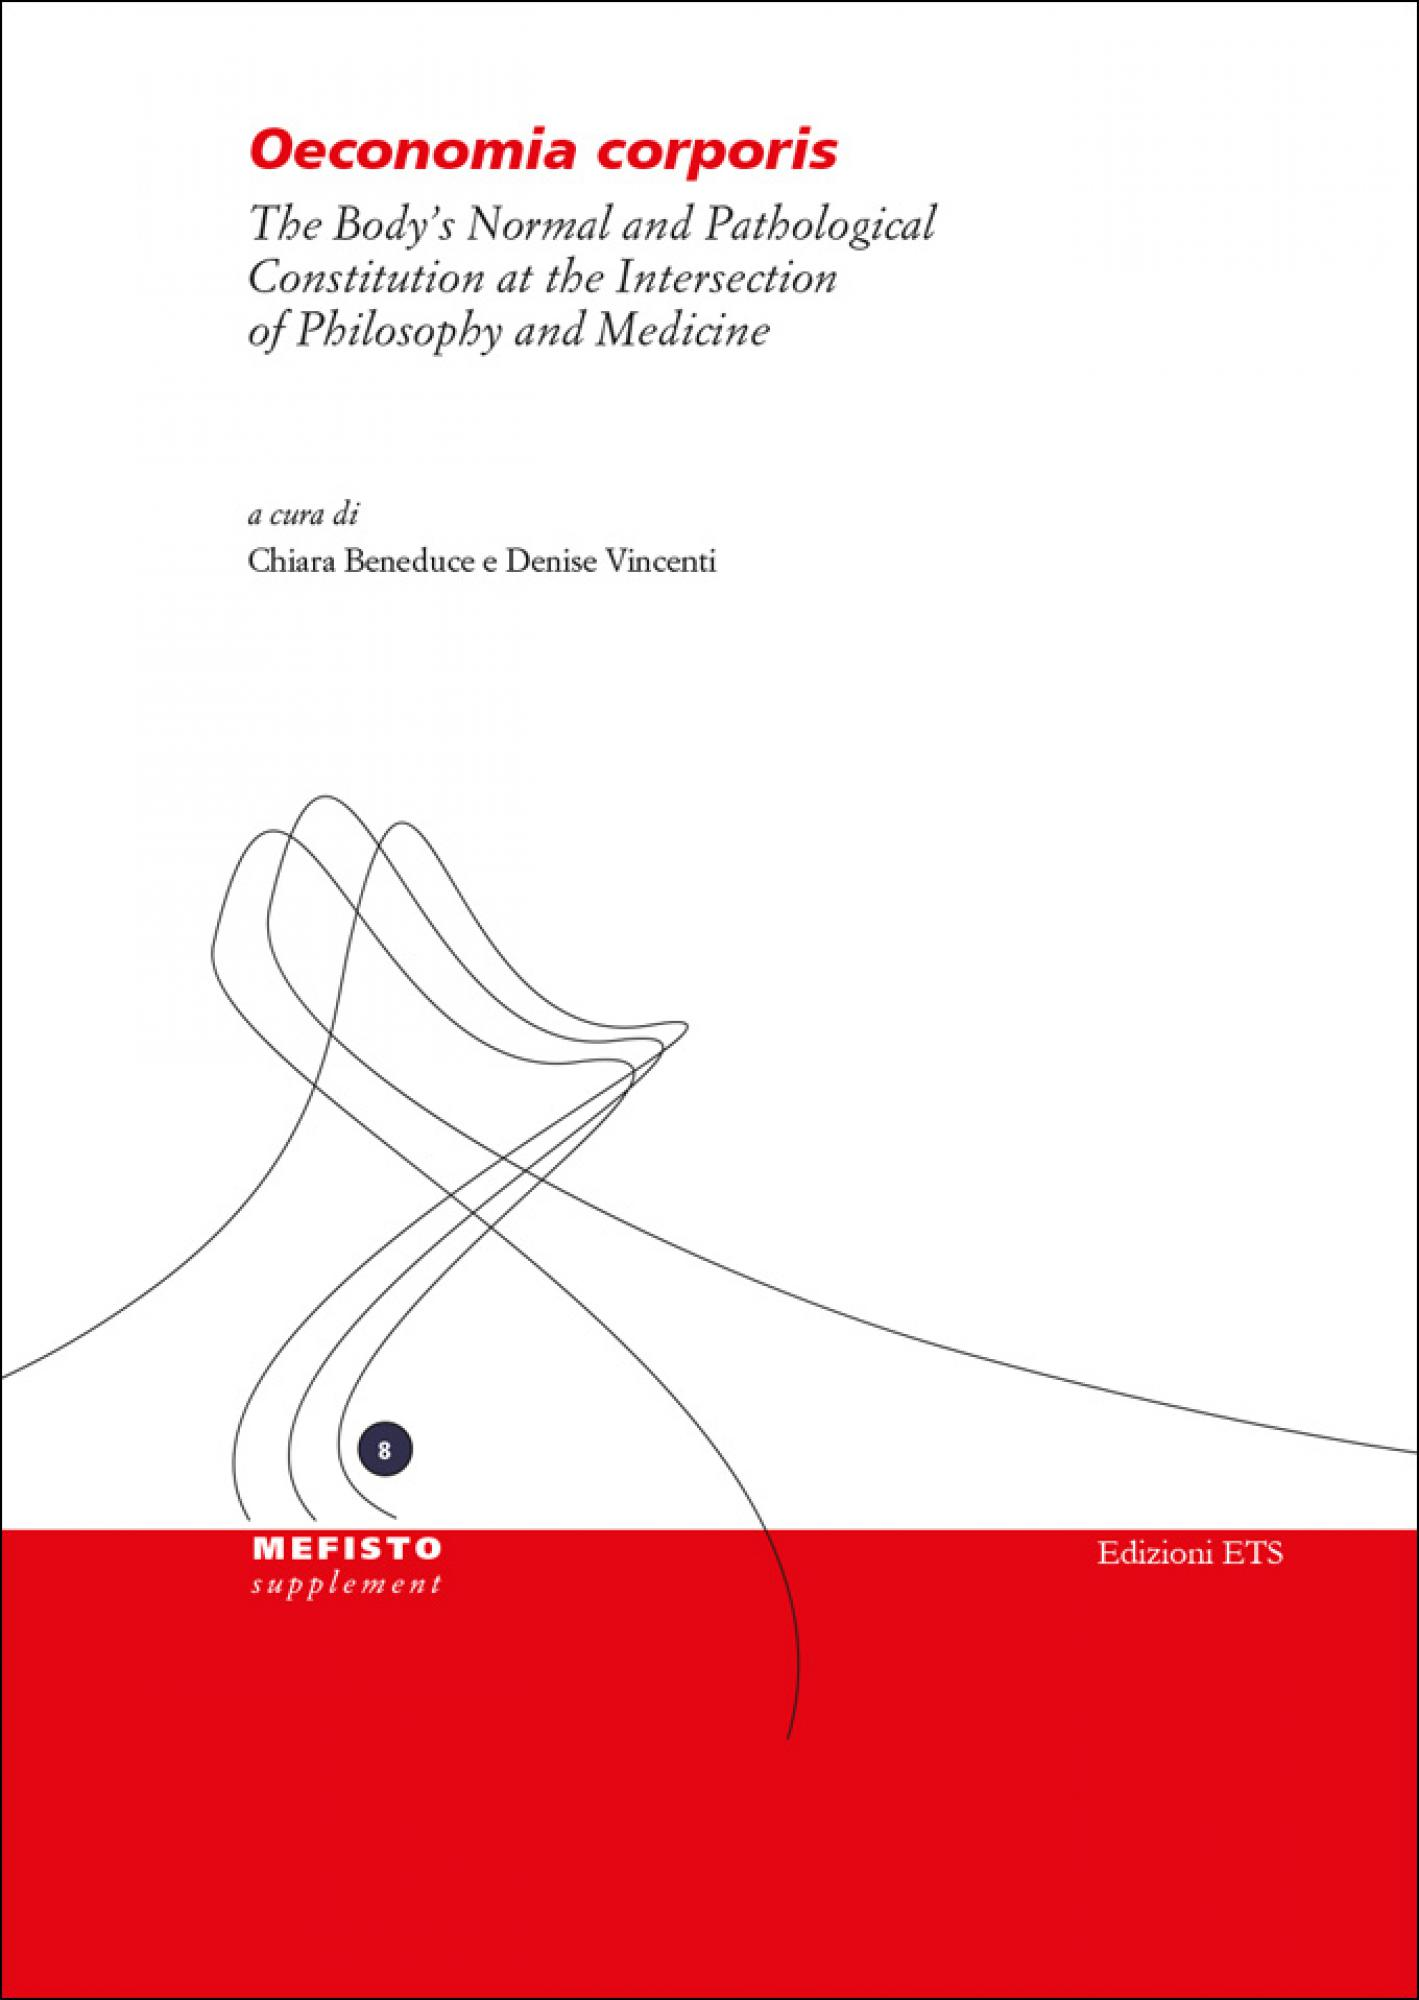 Oeconomia corporis.